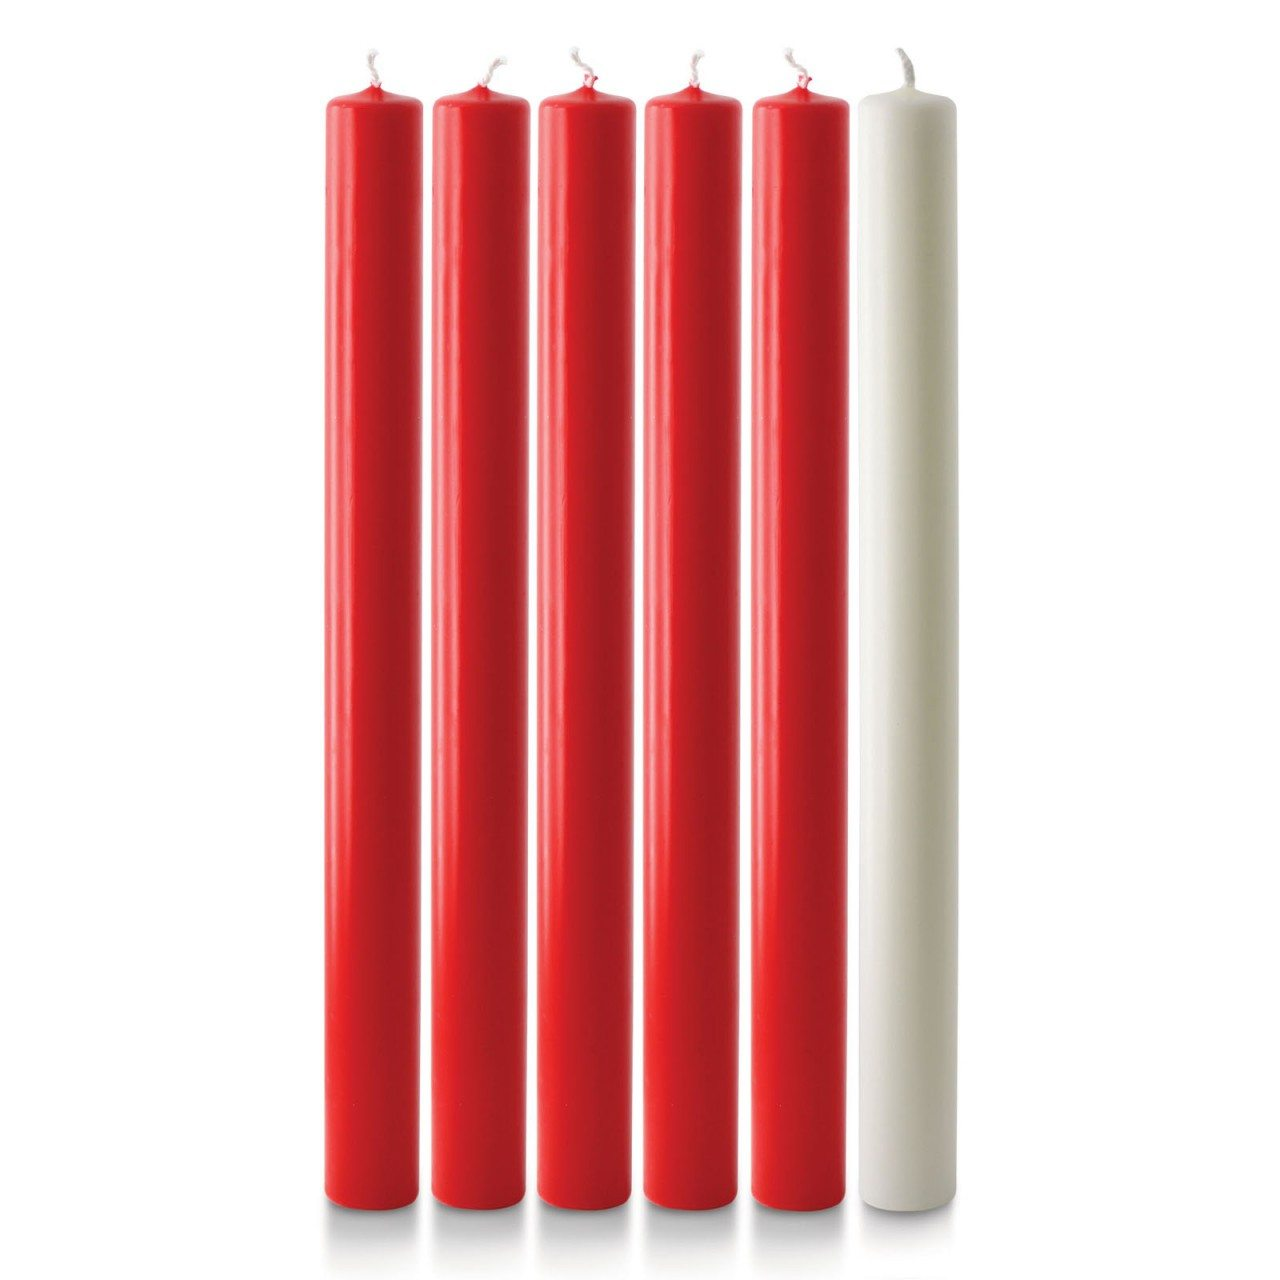 12 x 1 advent candles 5 red 1 white grace church. Black Bedroom Furniture Sets. Home Design Ideas